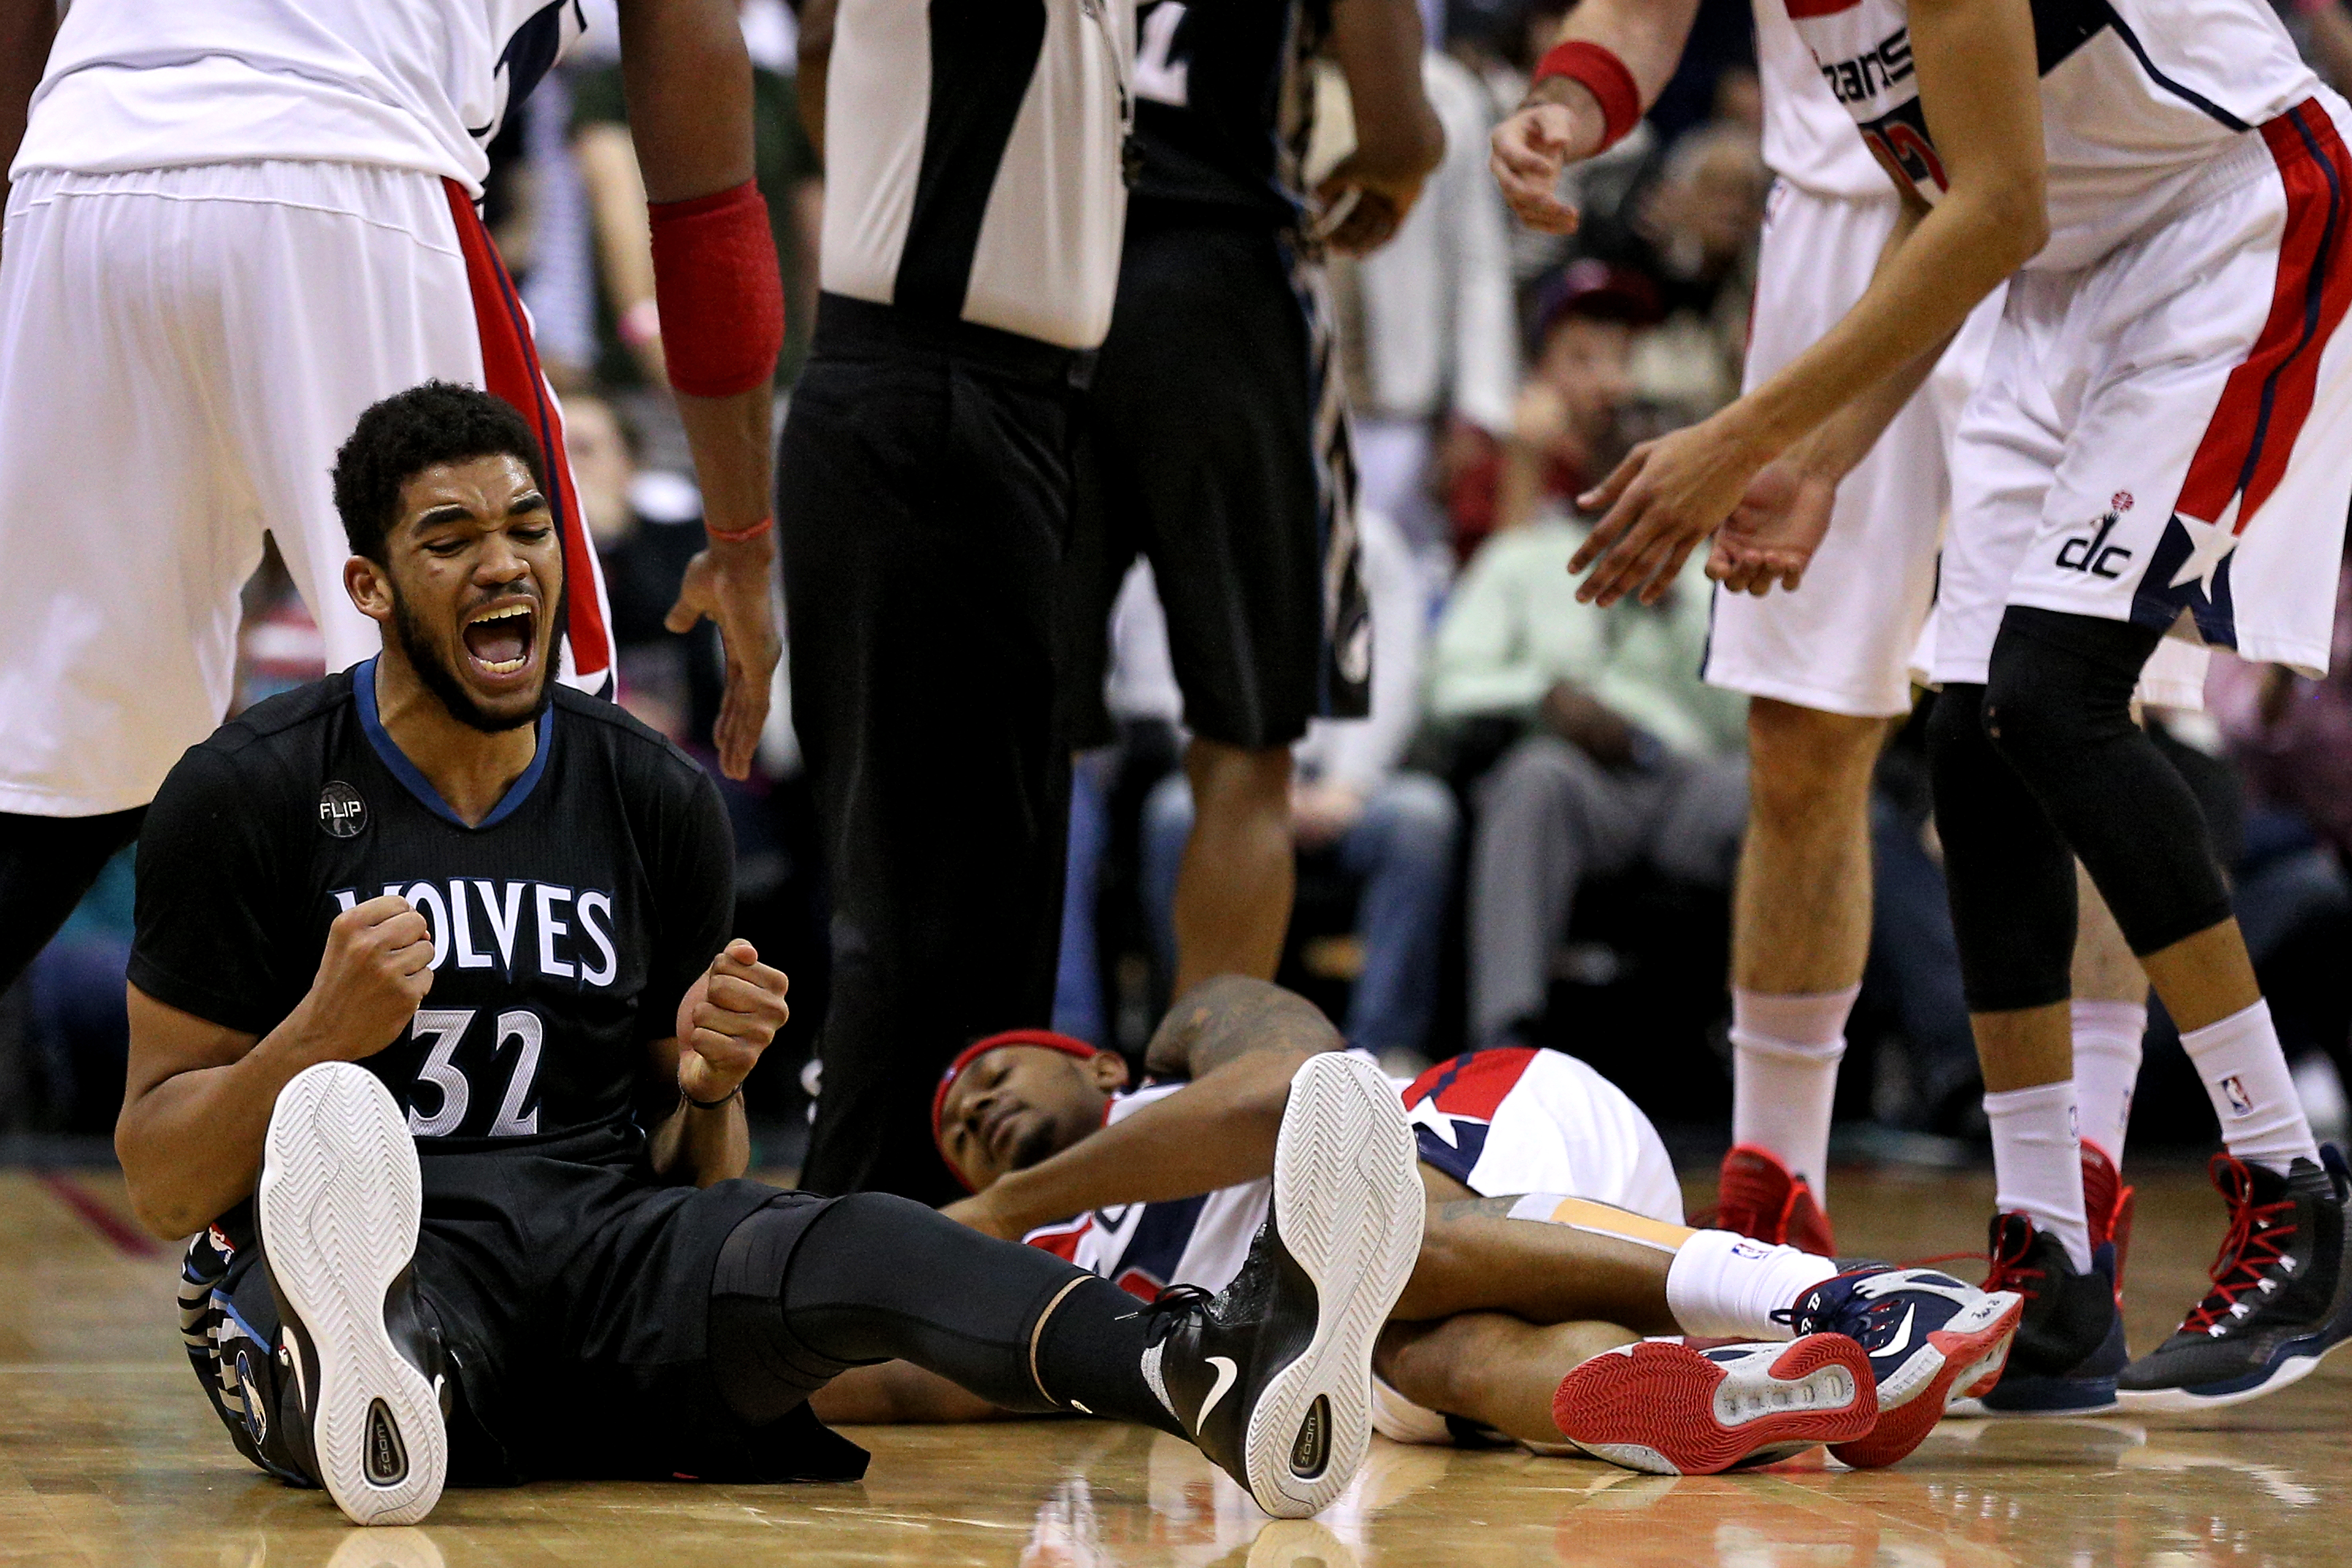 WASHINGTON, DC - MARCH 25: Karl-Anthony Towns #32 of the Minnesota Timberwolves reacts in the first overtime against the Washington Wizards at Verizon Center on March 25, 2016 in Washington, DC. The Minnesota Timberwolves won, 132-129, in double overtime.